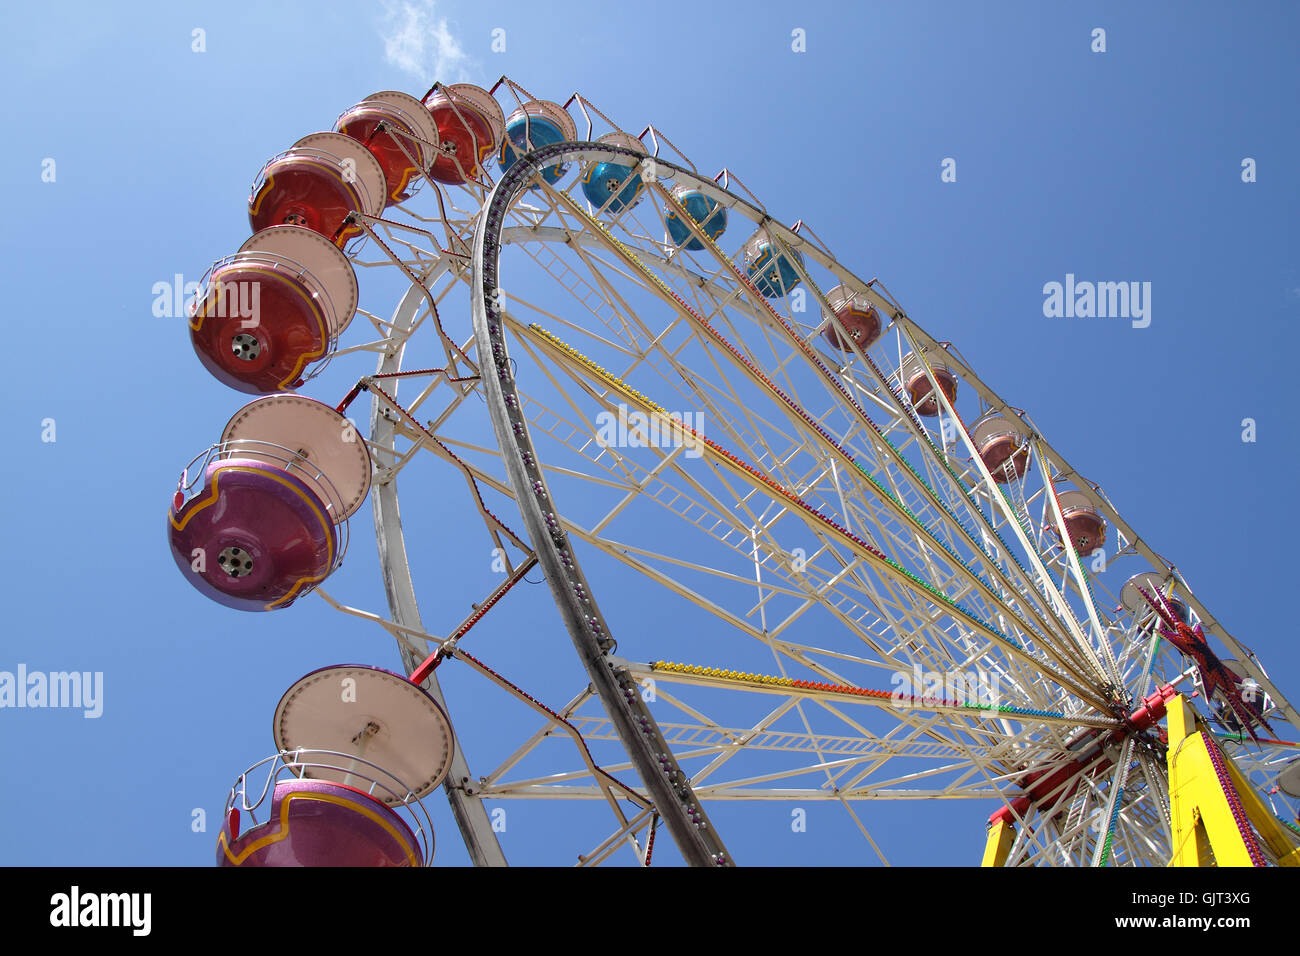 parish fair fuss fair - Stock Image